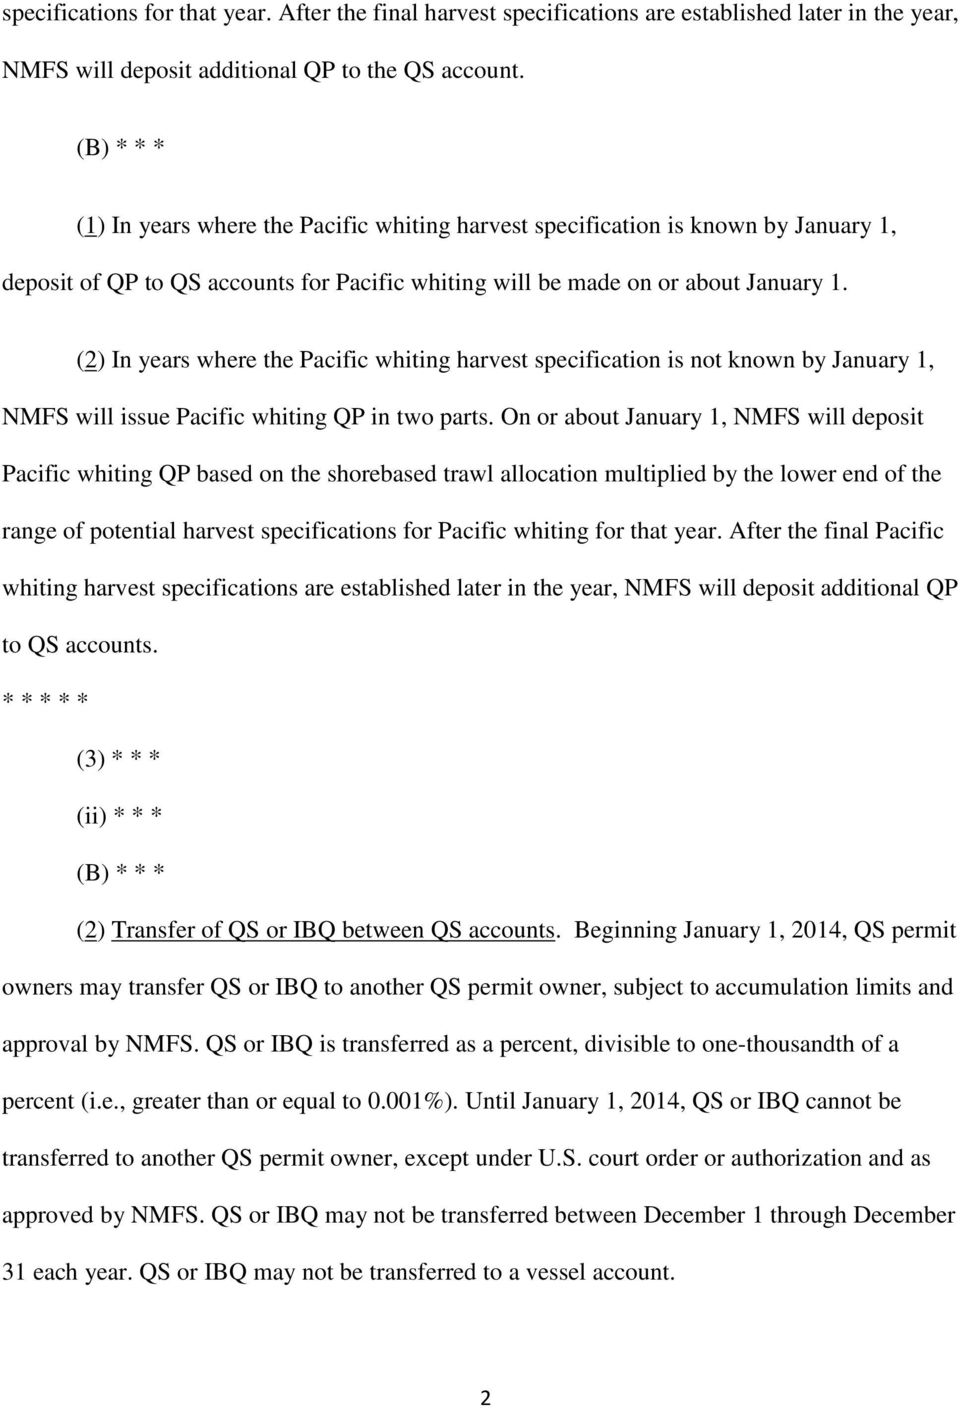 (2) In years where the Pacific whiting harvest specification is not known by January 1, NMFS will issue Pacific whiting QP in two parts.